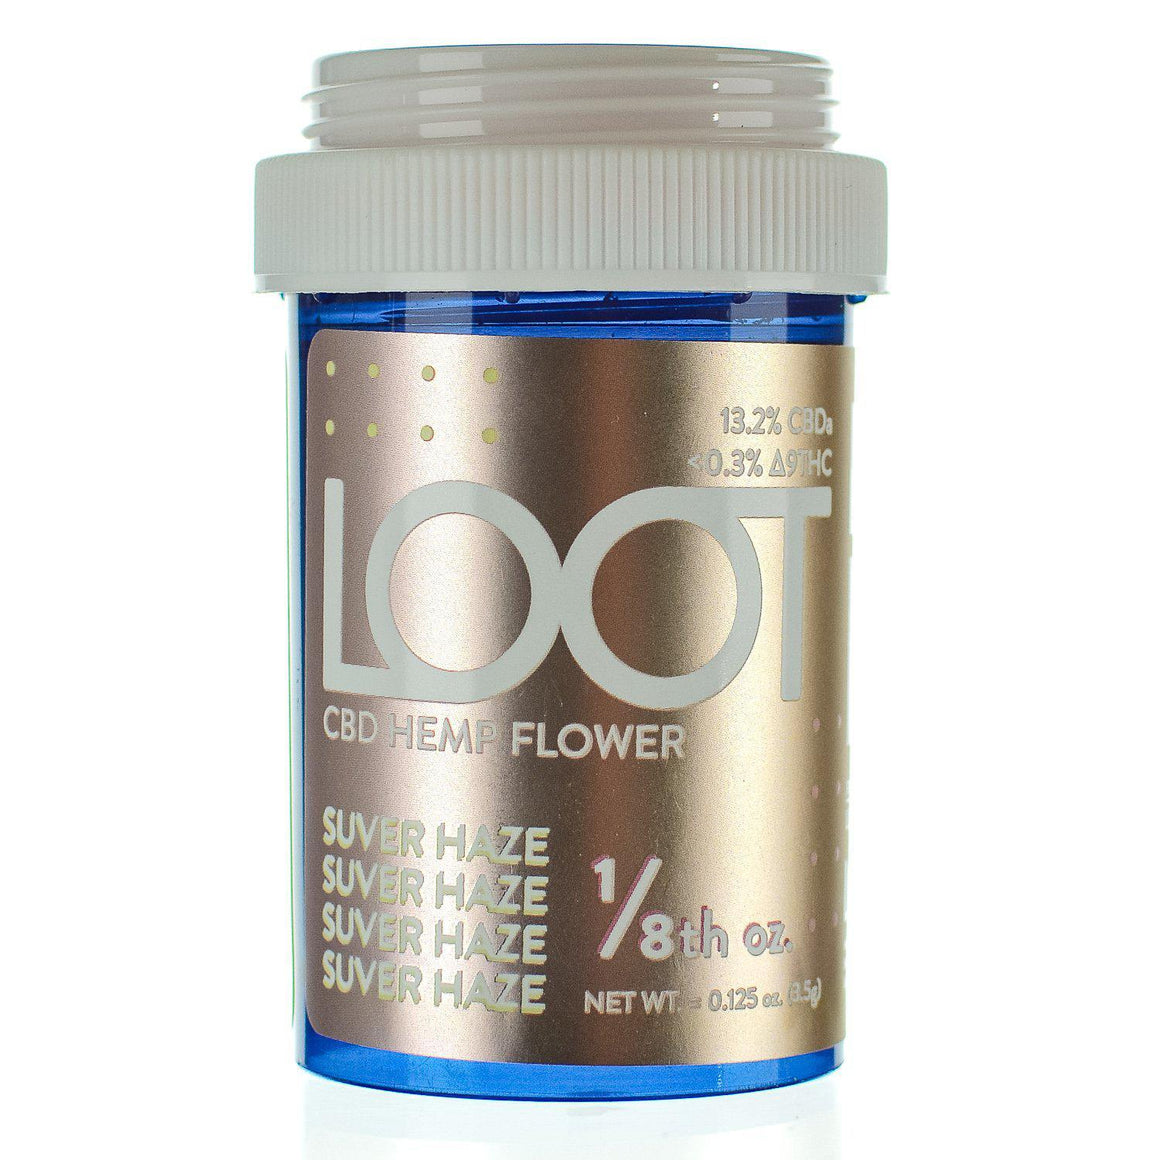 Loot CBD Hemp Flower Suver Haze | Andhemp.com